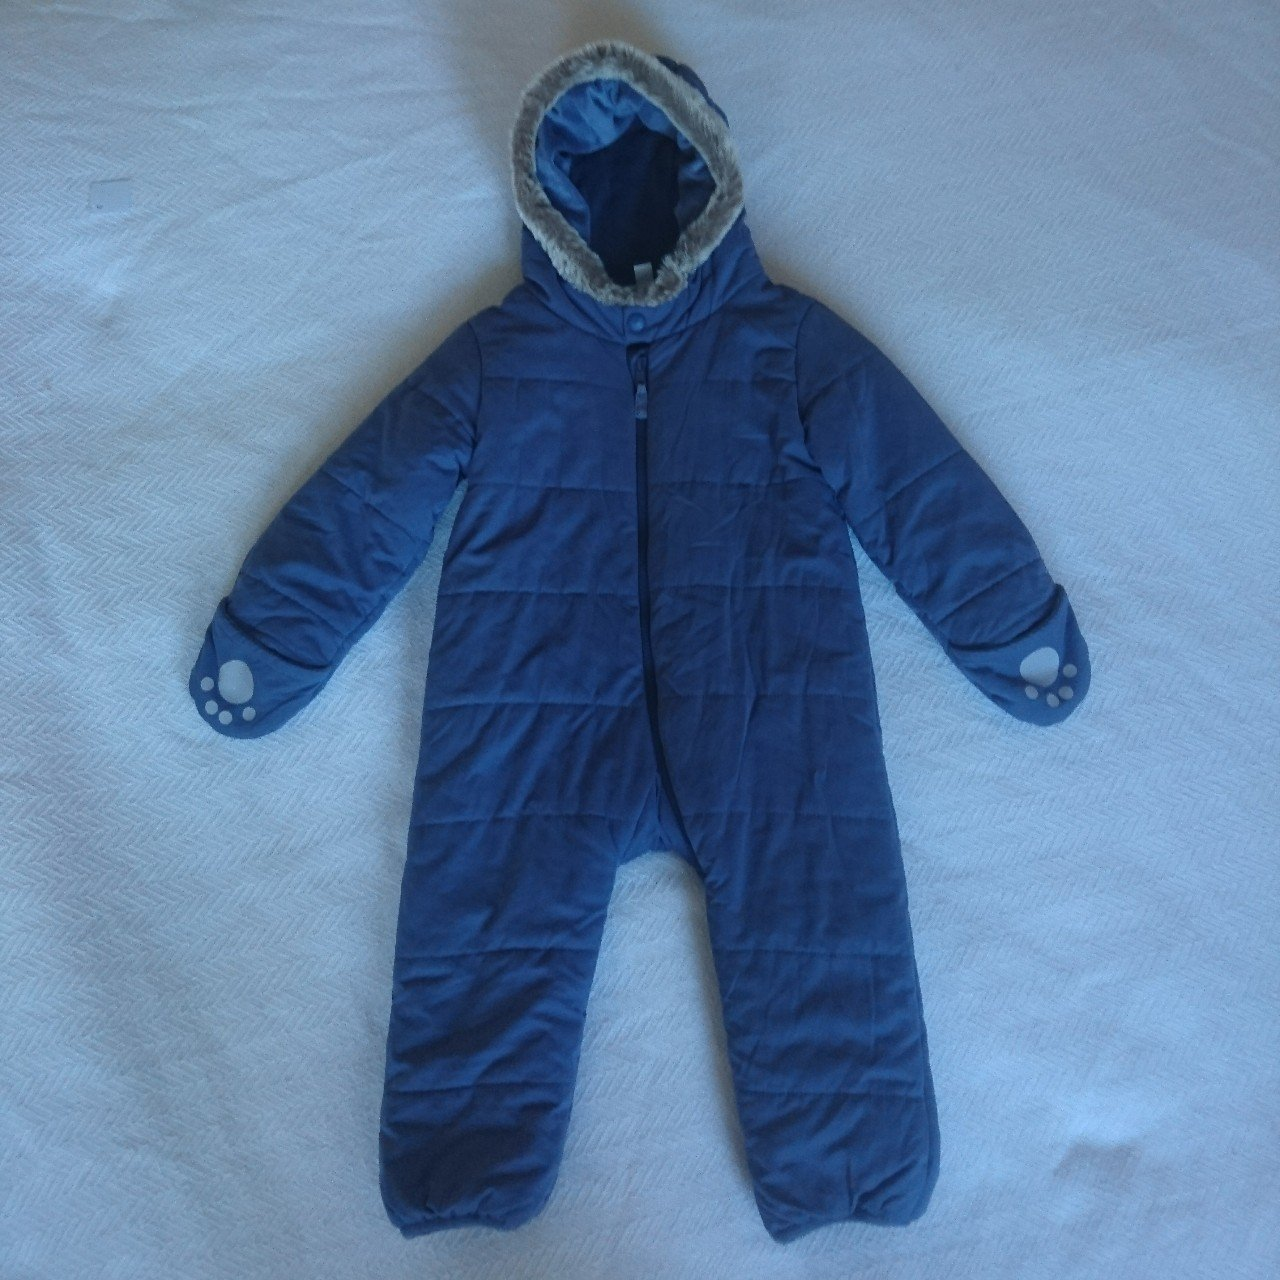 4b3bf6815e0f The Little White Company Boys 12-18 Months Snowsuit All in a - Depop